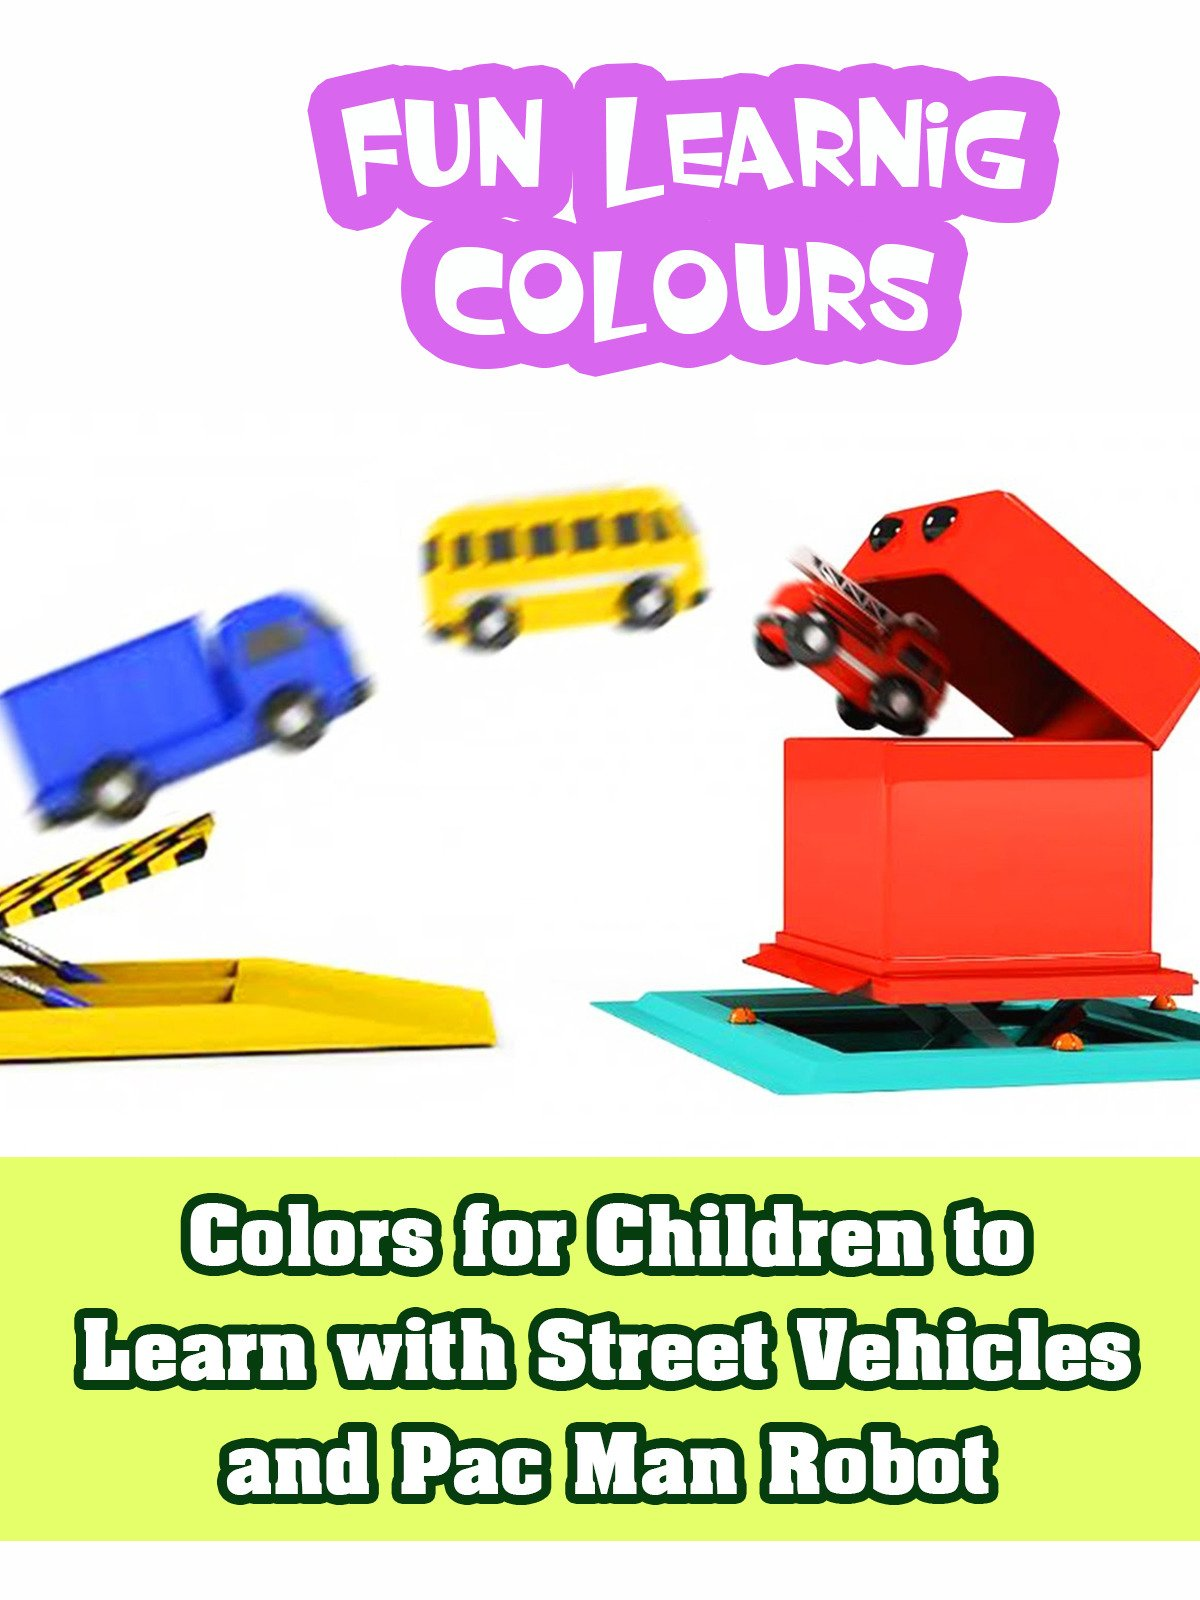 Colors for Children to Learn with Street Vehicles and Pac Man Robot